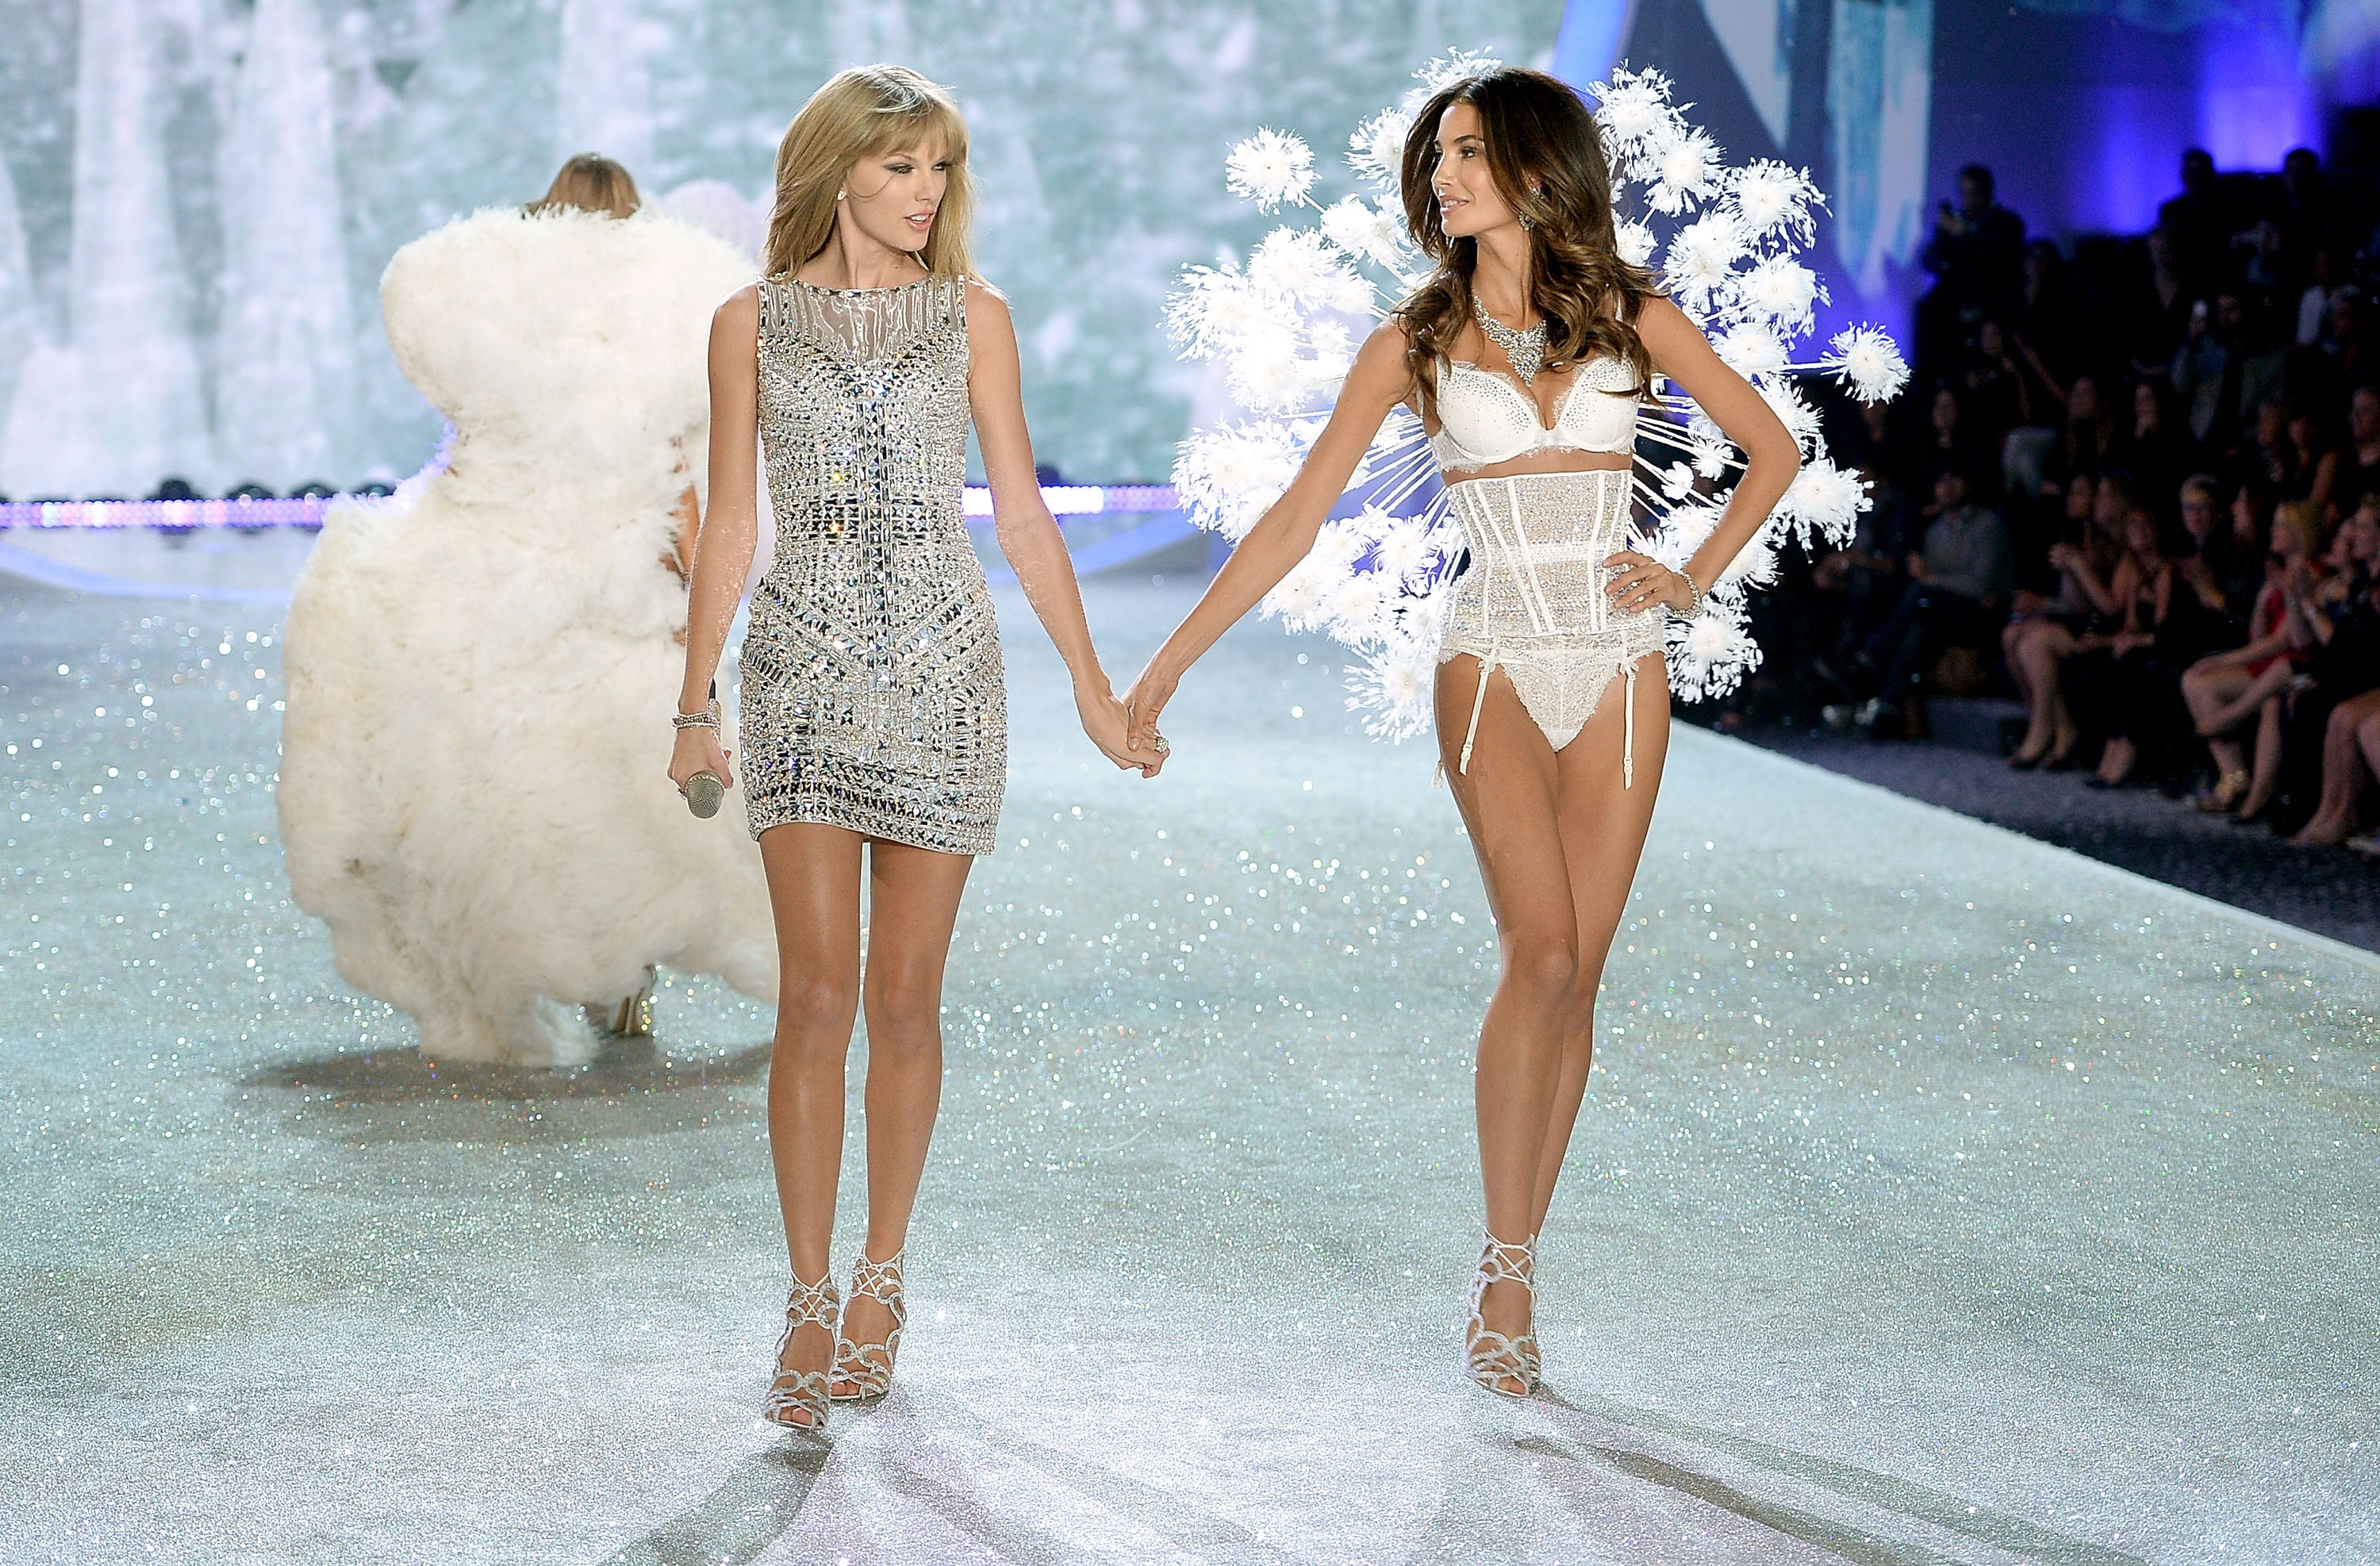 Photo by Dimitrios Kambouris/Getty Images for Victoria's Secret